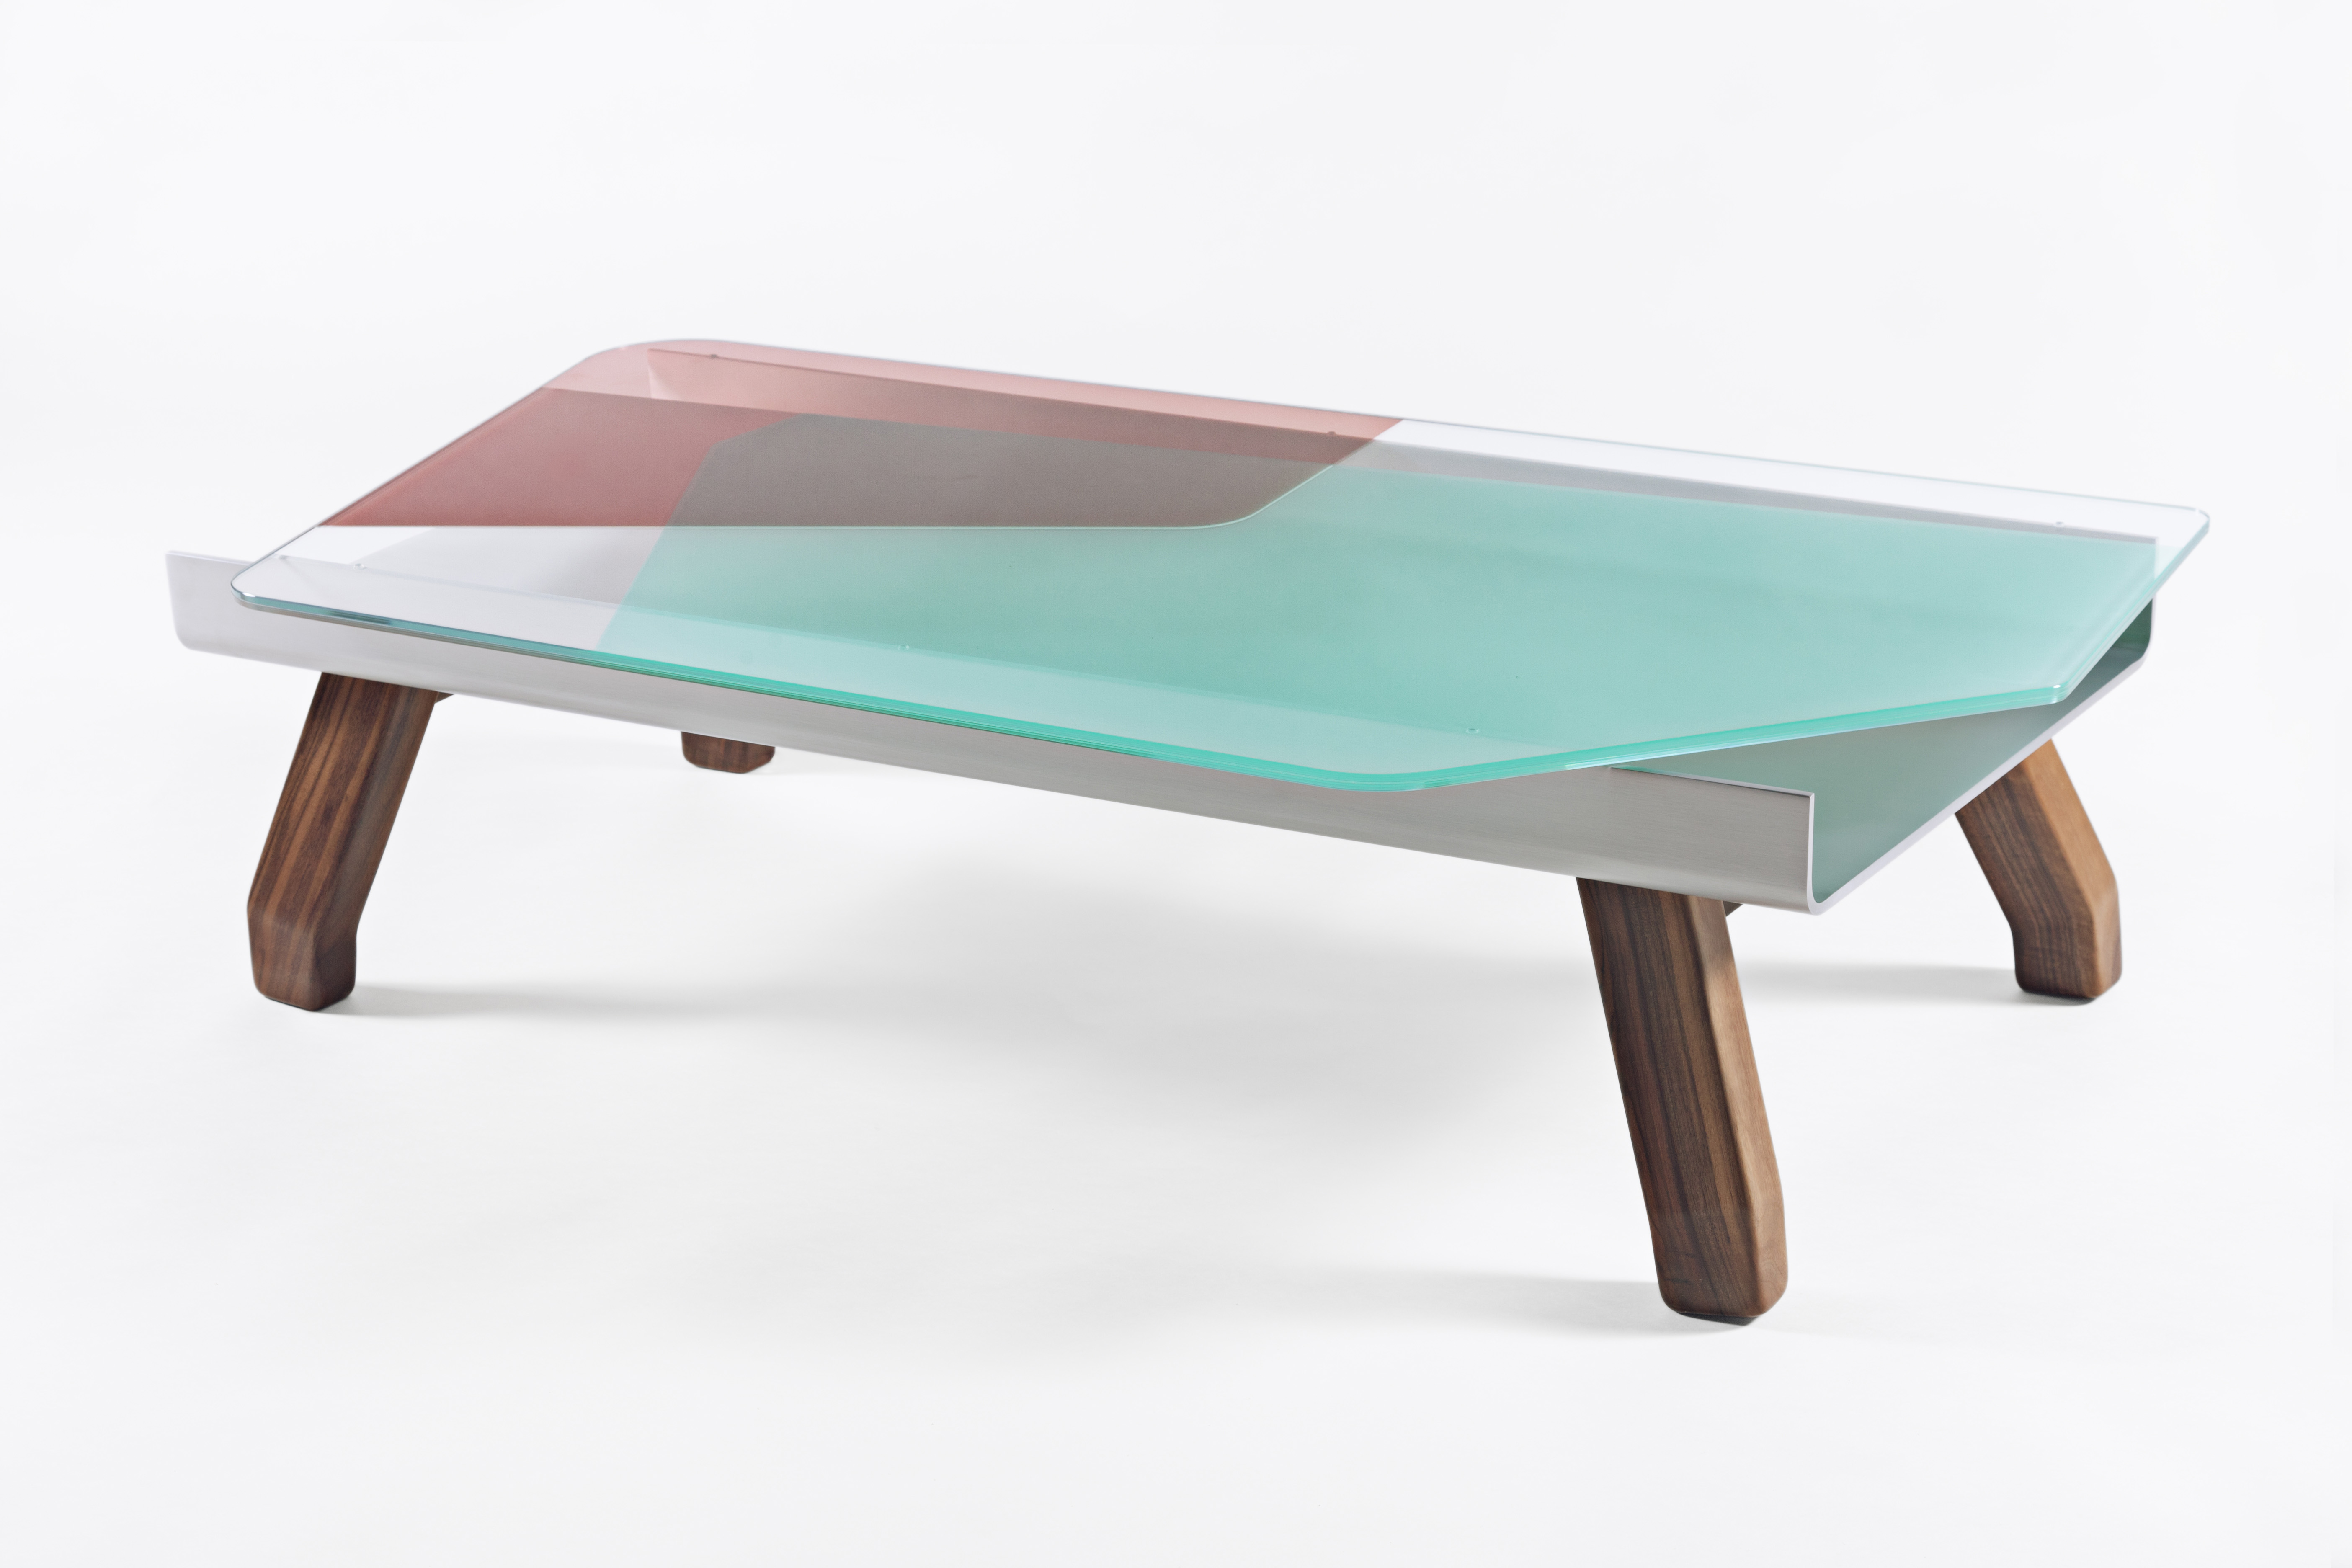 Dragonfly Coffee Table 2013 Hella Jongerius Limited edition of 8 pieces + 2 A.P. + 2 Prototypes Numbered and signed pieces Glass, transparent spray-painted aluminium and American walnut.color to choose: green, pink or orange. Dimensions: - Height: 13,8 inches (35 cm) - Length: 52,9 inches (134,4 cm) - Depth: 28,8 inches (73,1 cm)